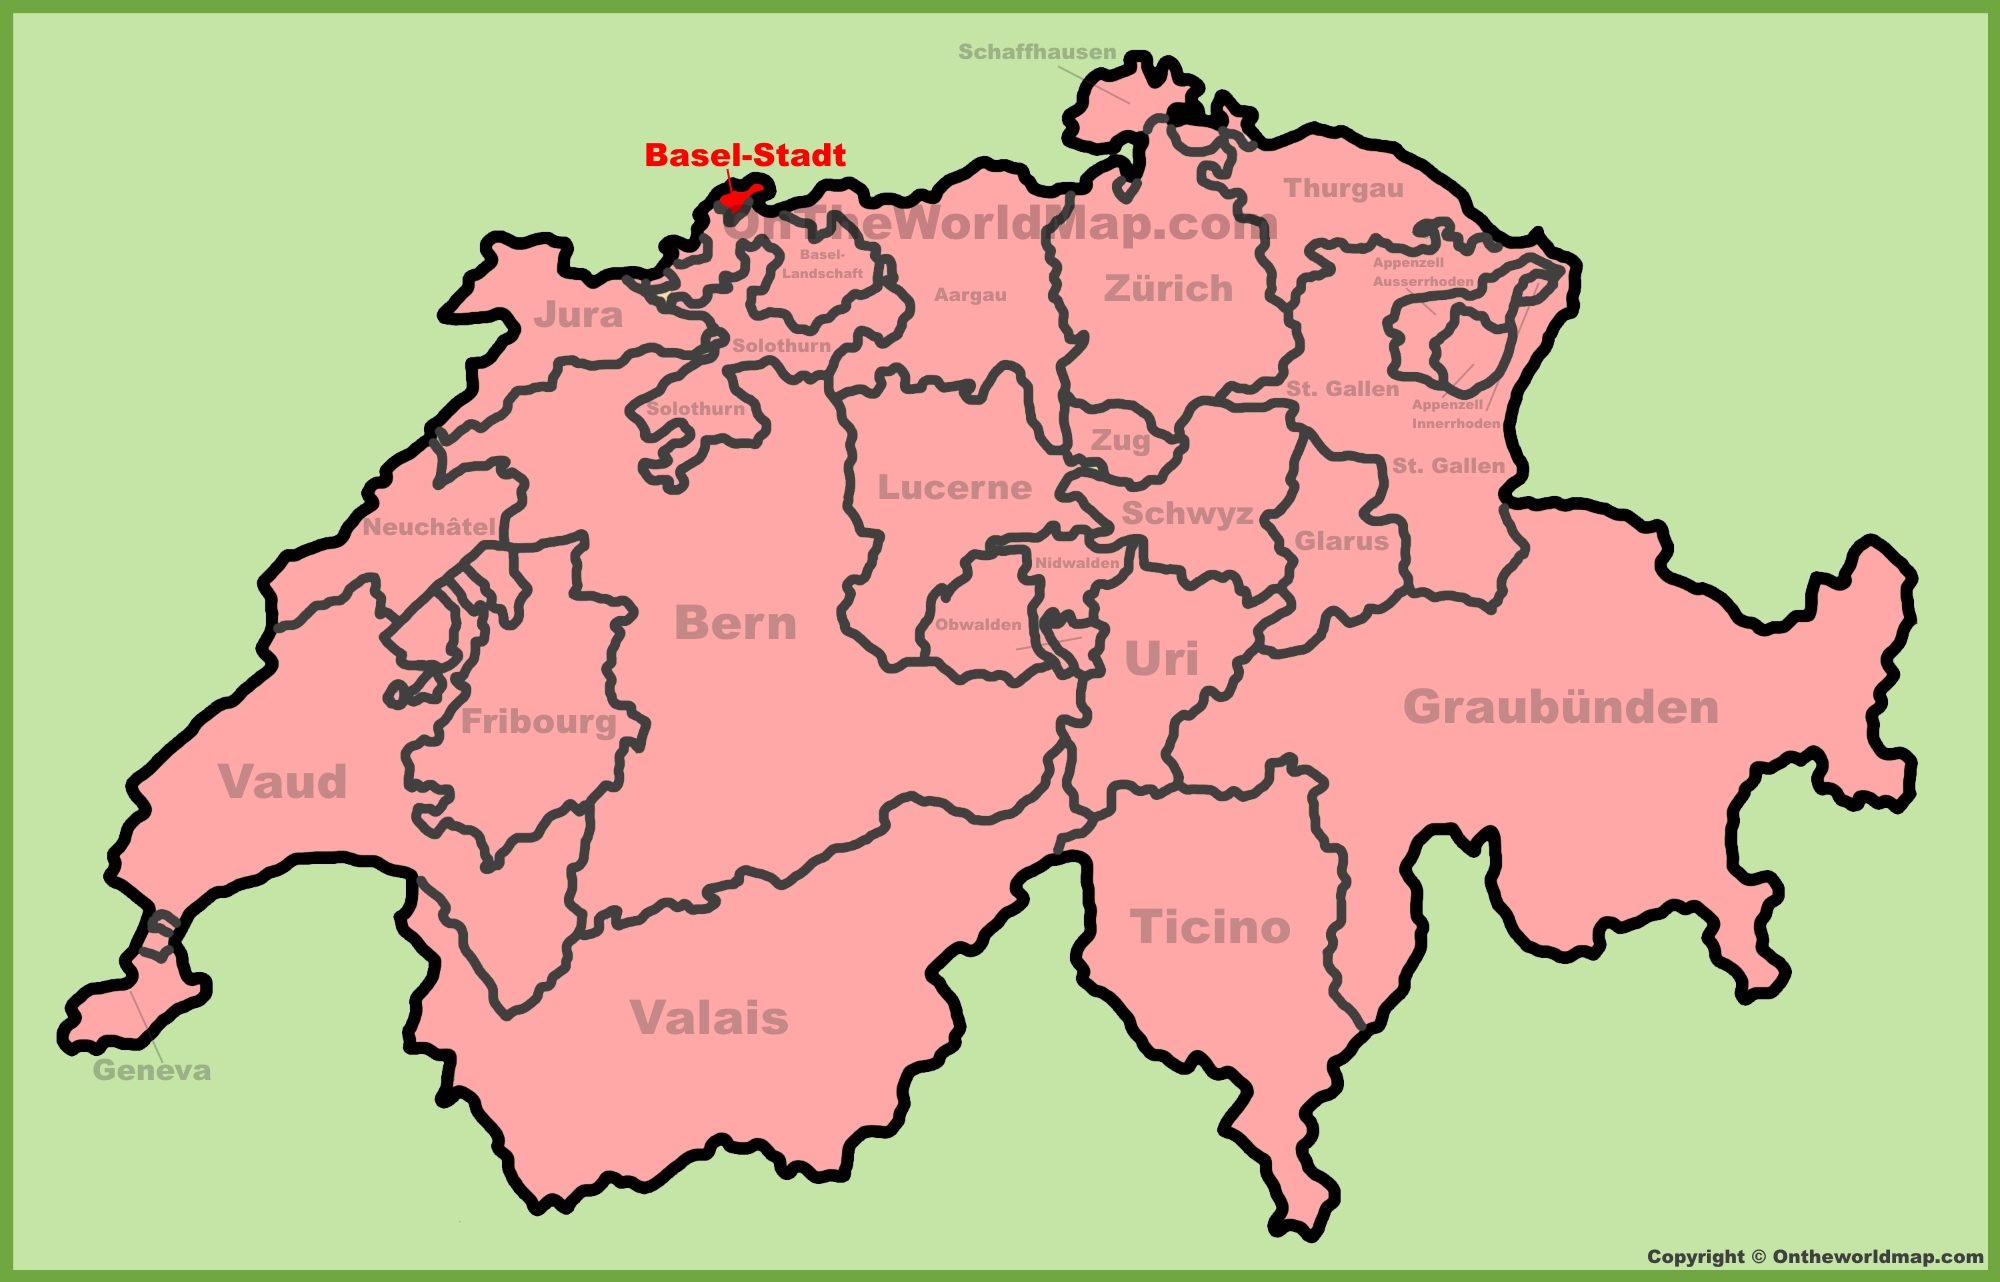 Basel Switzerland Map Canton of Basel Stadt location on the Switzerland map